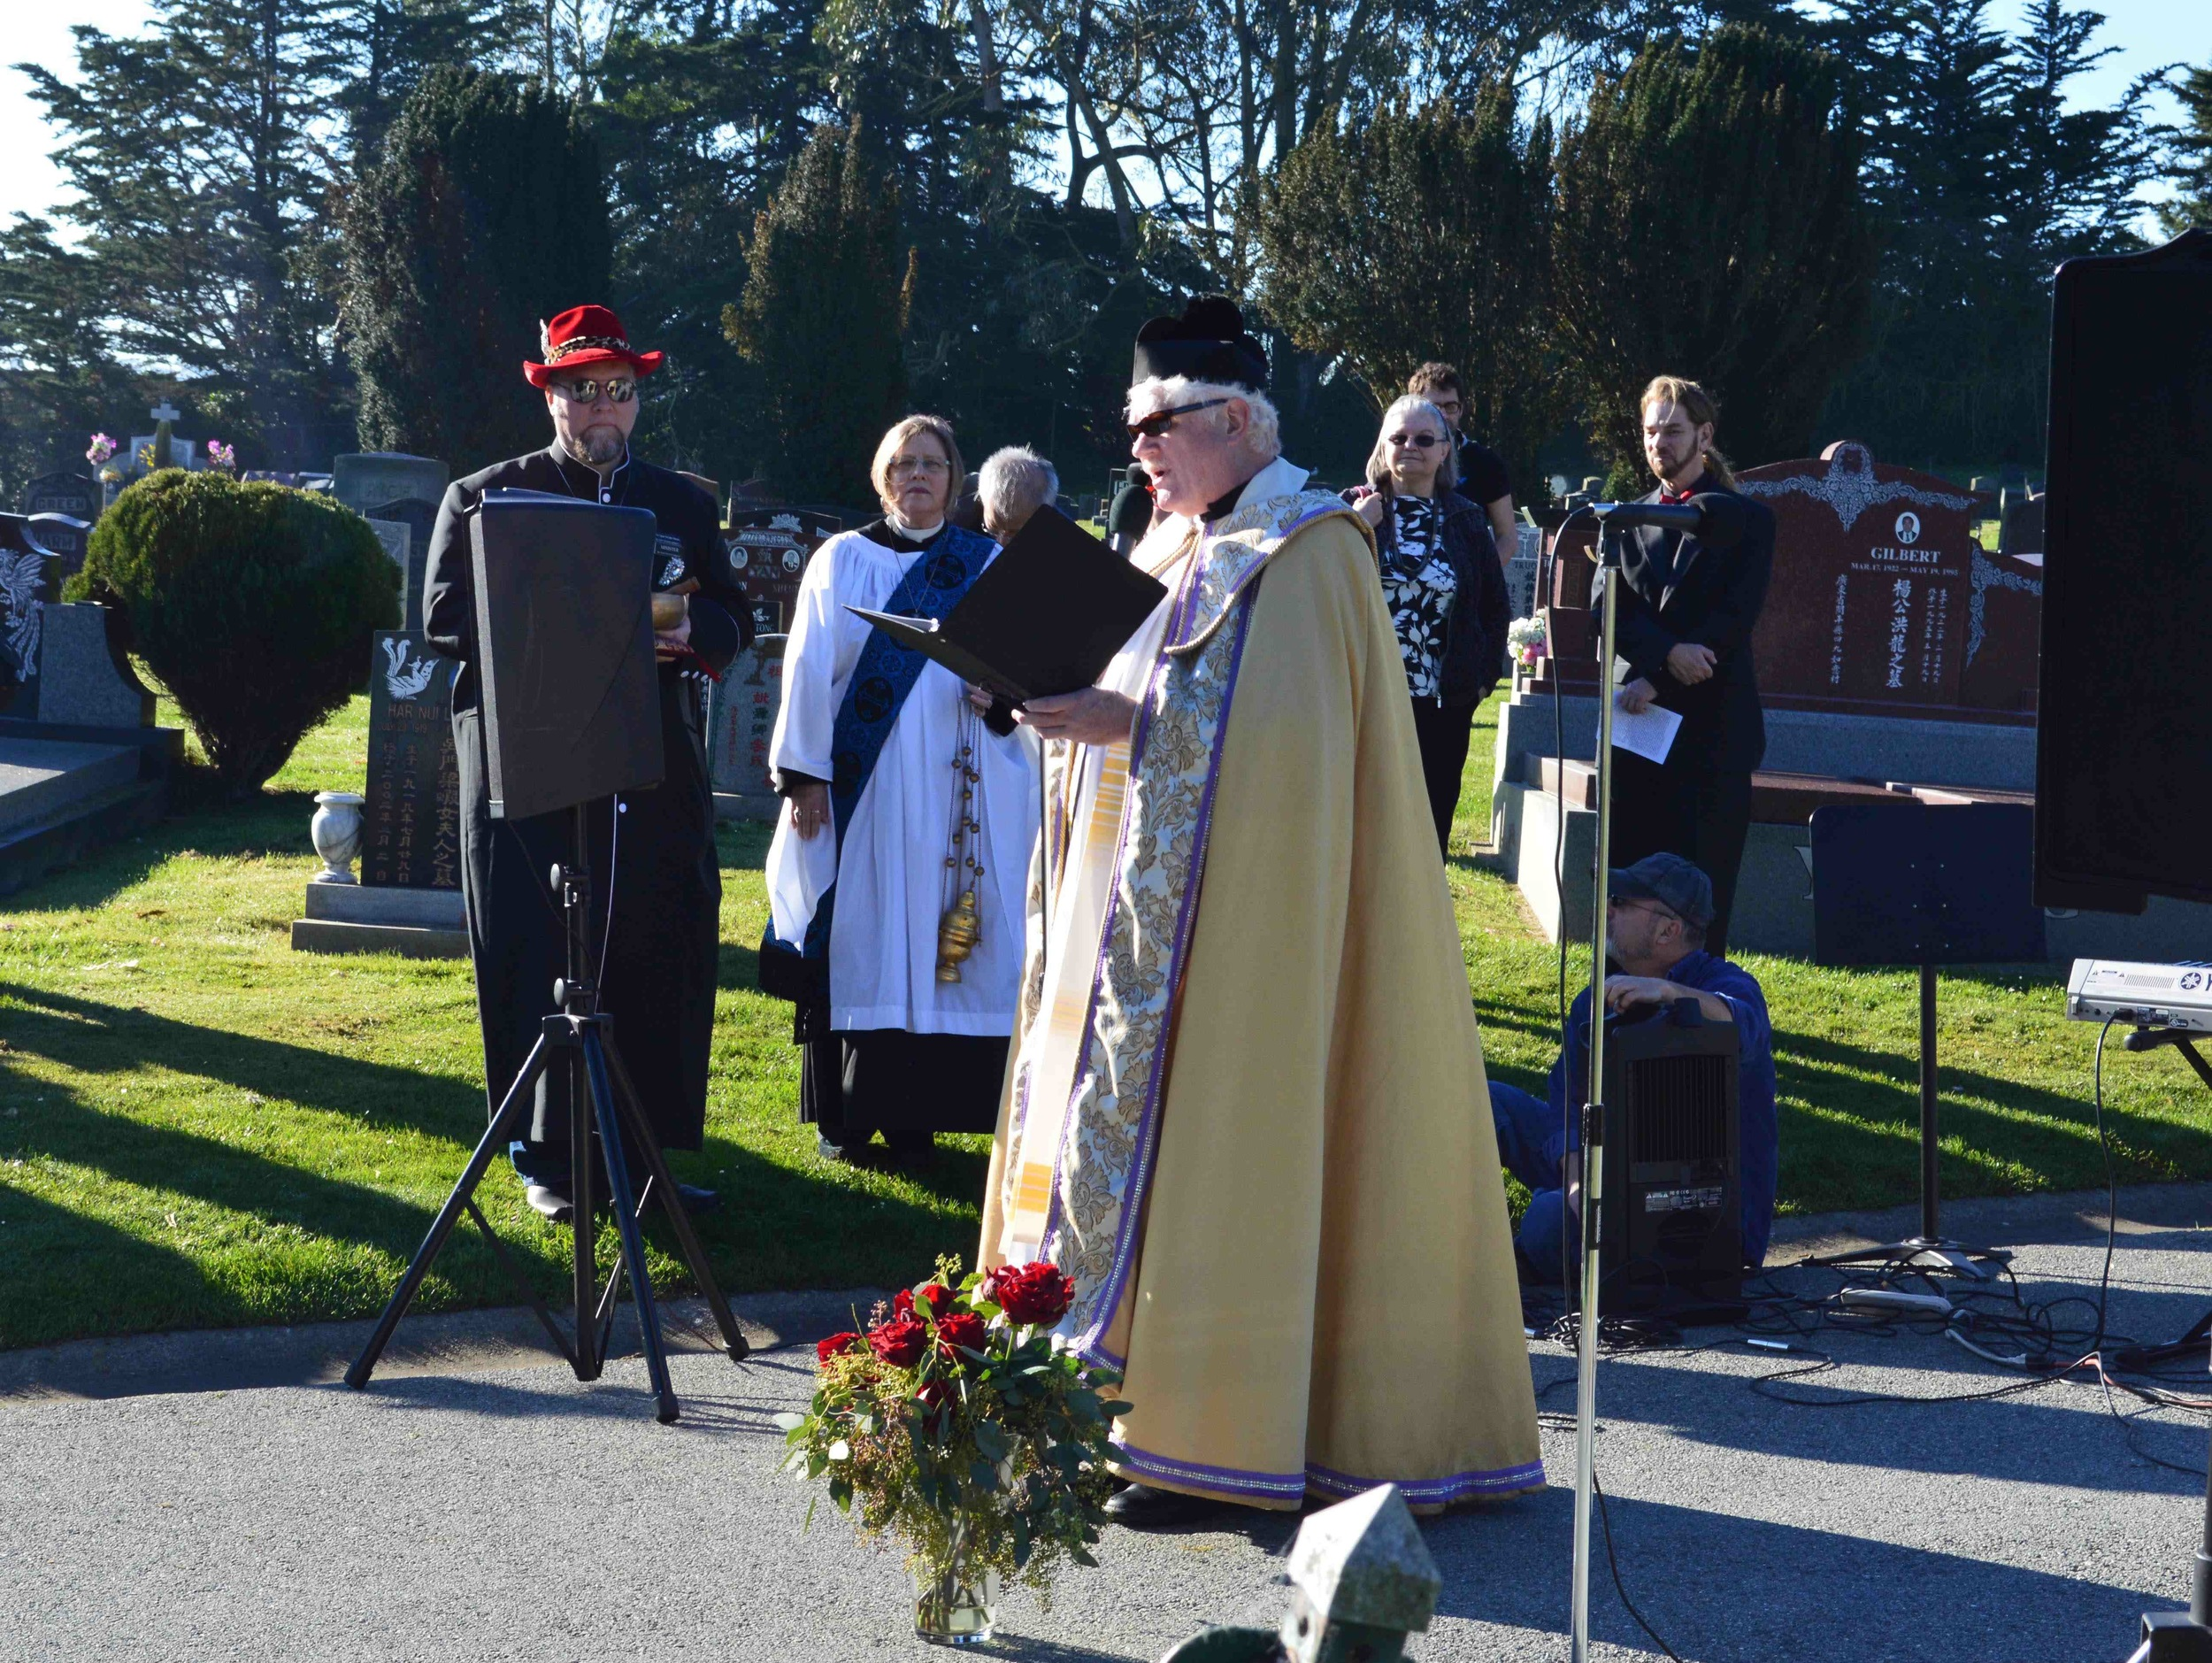 On Sunday 15 February 2015, theRev. Lyle Beckman of San Francisco Night Ministry offers keynote remarks at the Imperial Court's40th anniversary pilgrimage to the graves of Emperor Norton and Jos é  Sarria, the Widow Norton.  Photo: John Blackburn.